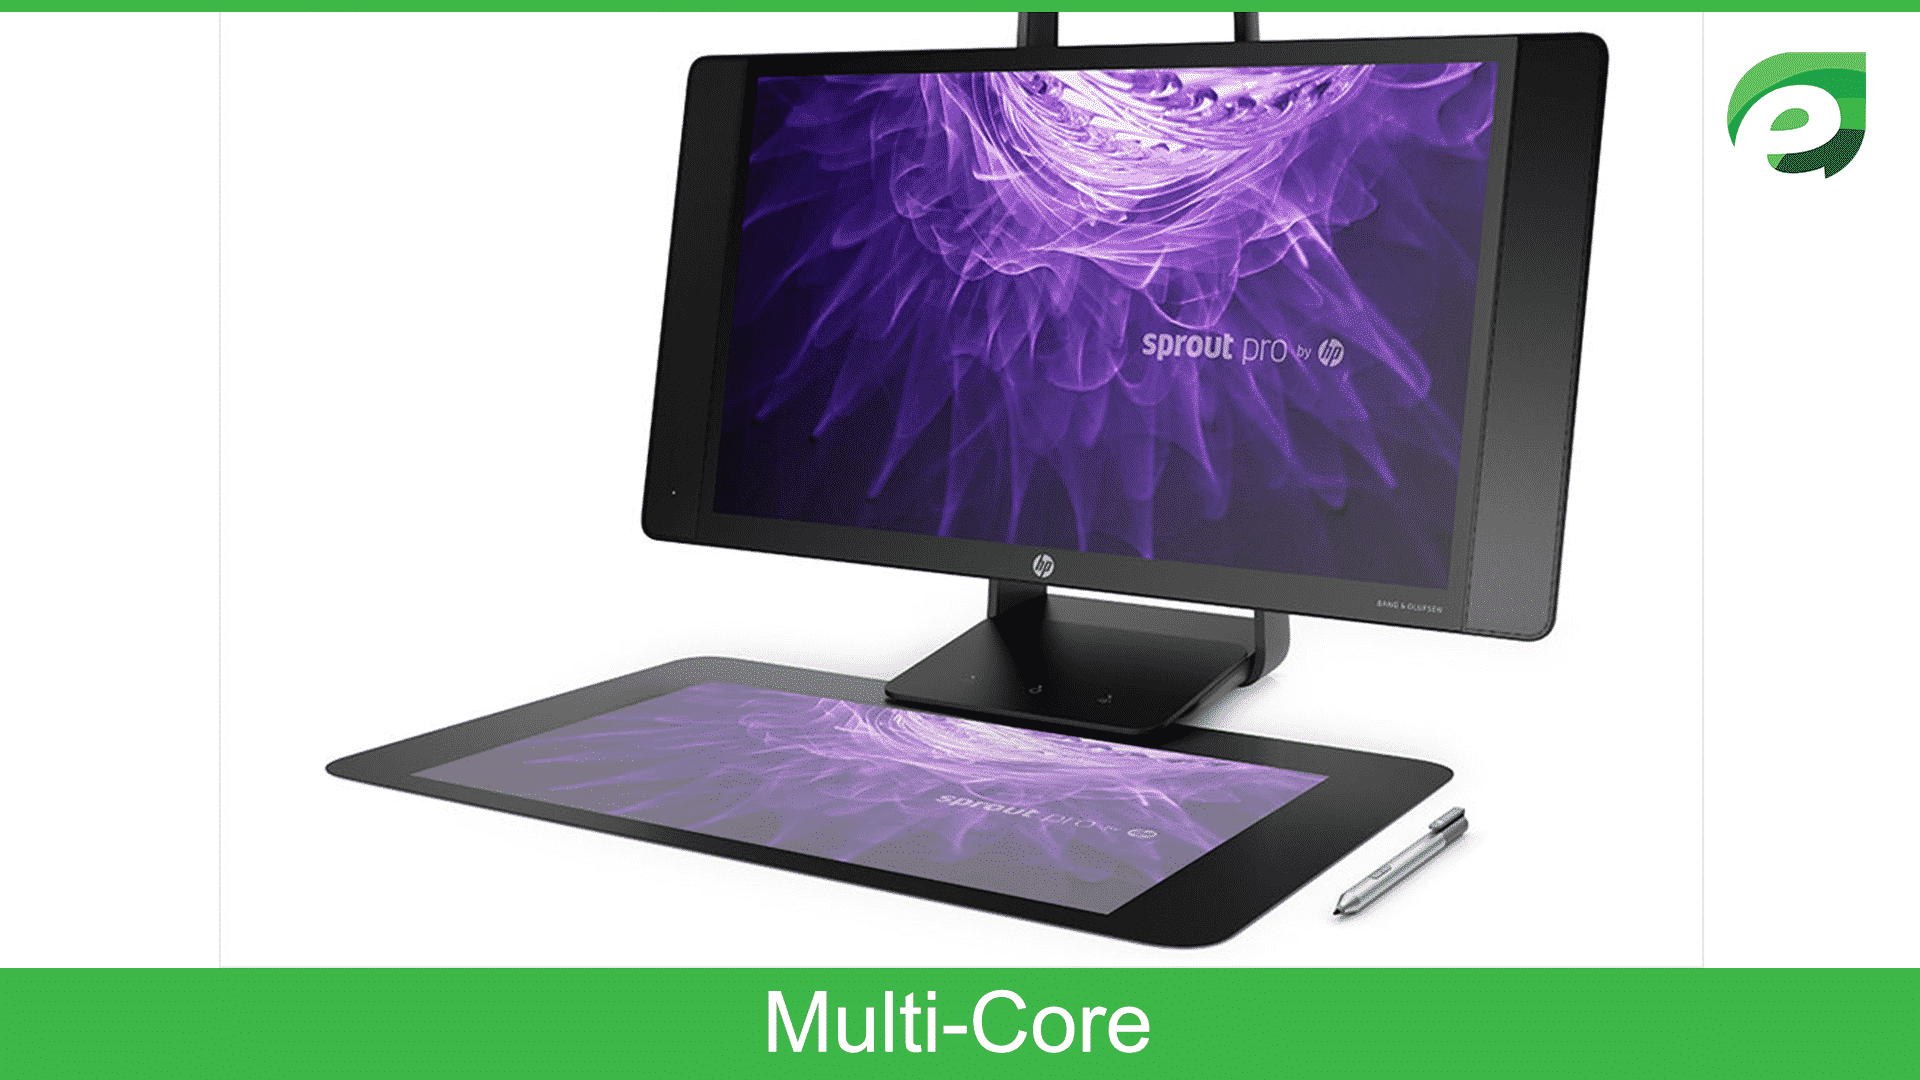 hp sprout G2 - multi core